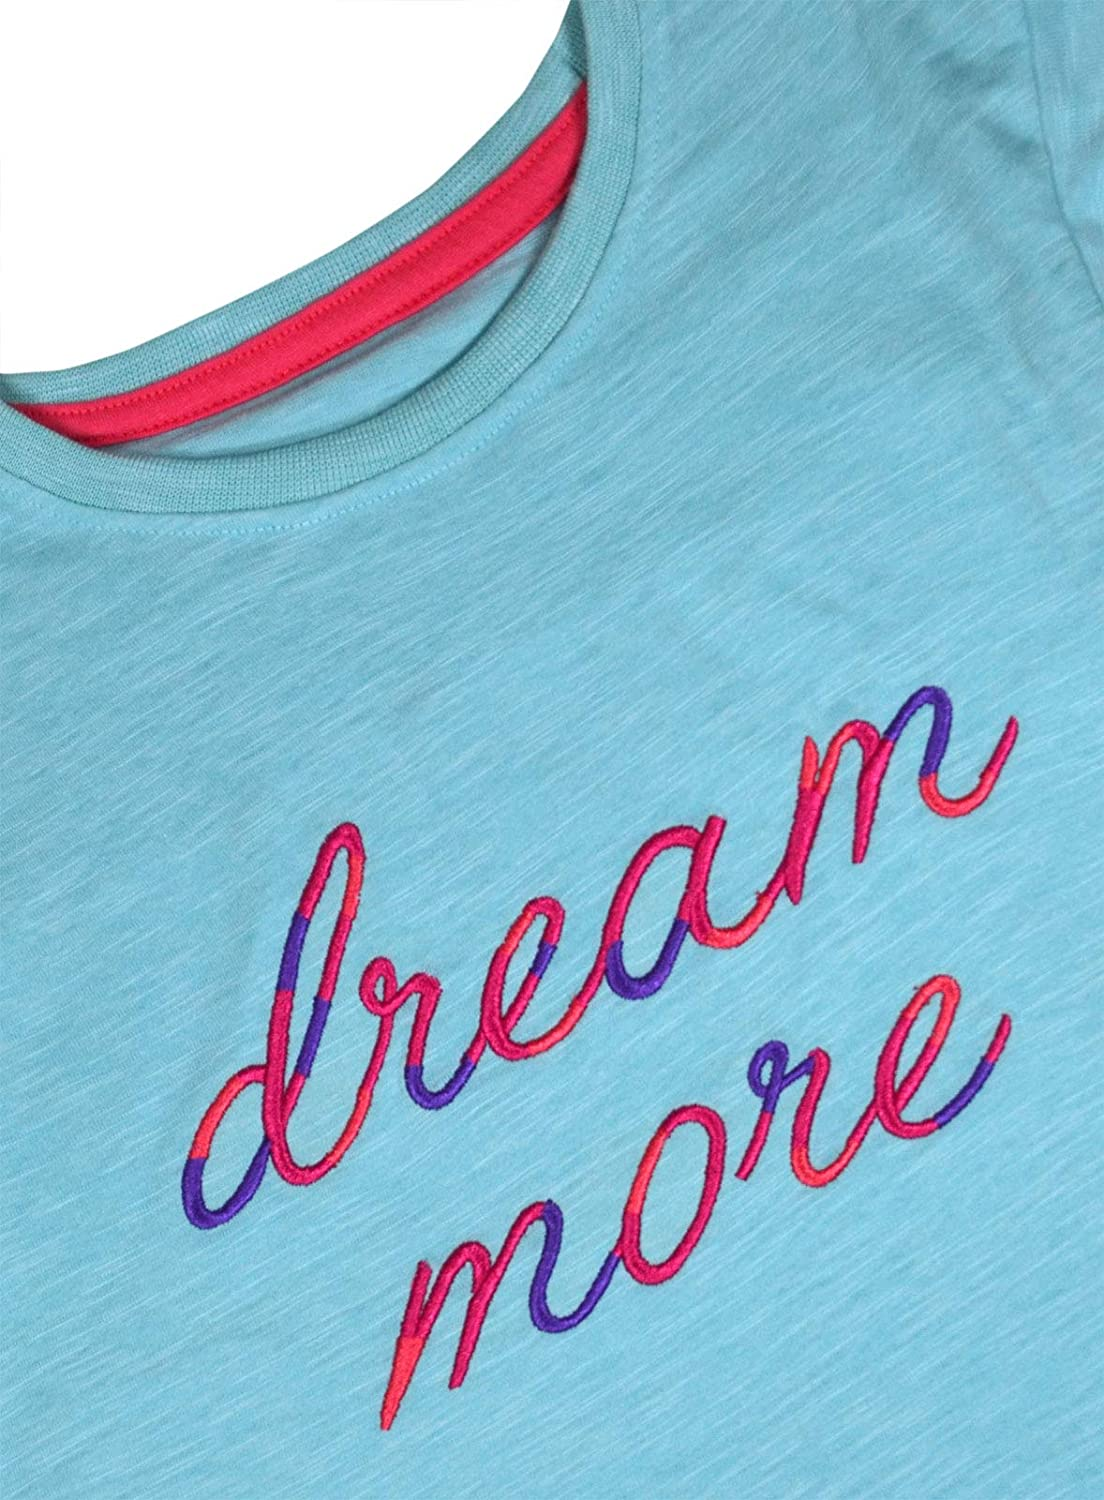 Machine Washable jolly rascals Girls Pyjama T-Shirt in Cotton Blend with Crew Neck and Short Sleeves